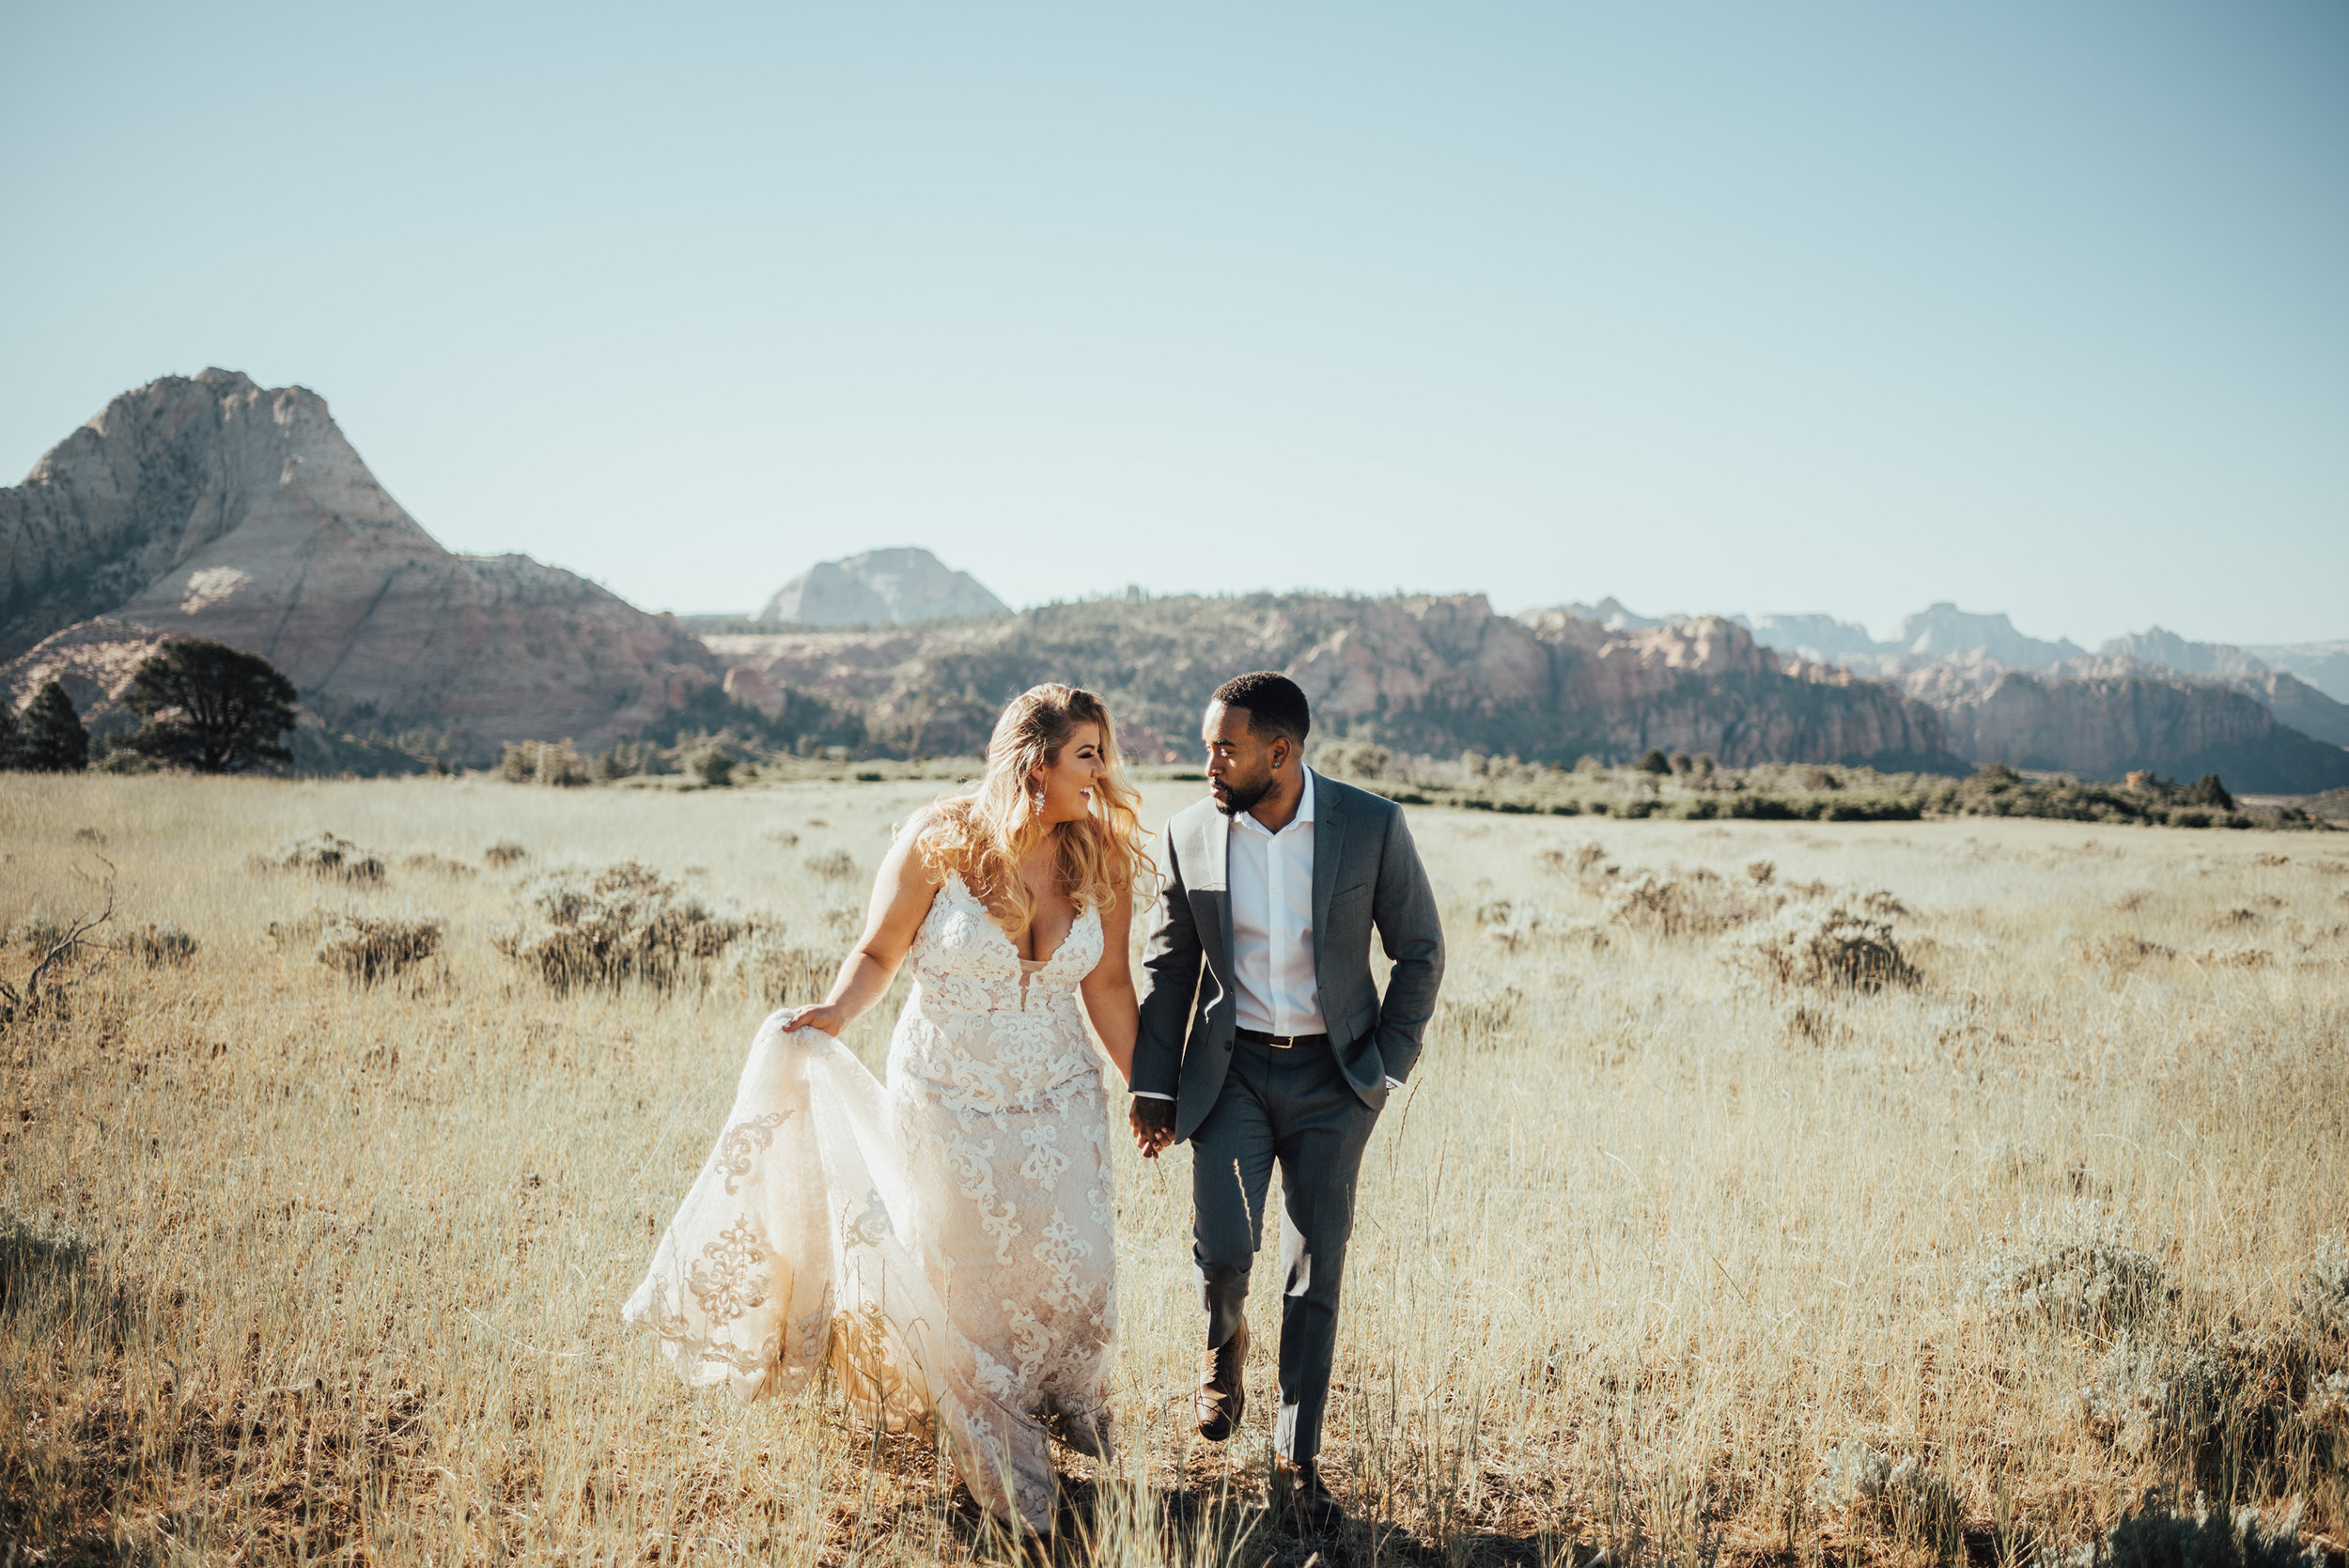 savannah-bridal-shop-ivory-and-beau-maggie-sottero-bride-tuscany-lynette-zion-national-park-wedding-utah-wedding-savannah-wedding-dresses-savannah-wedding-gowns-ashley-smith-photography-vanilla-and-the-bean-20.JPG